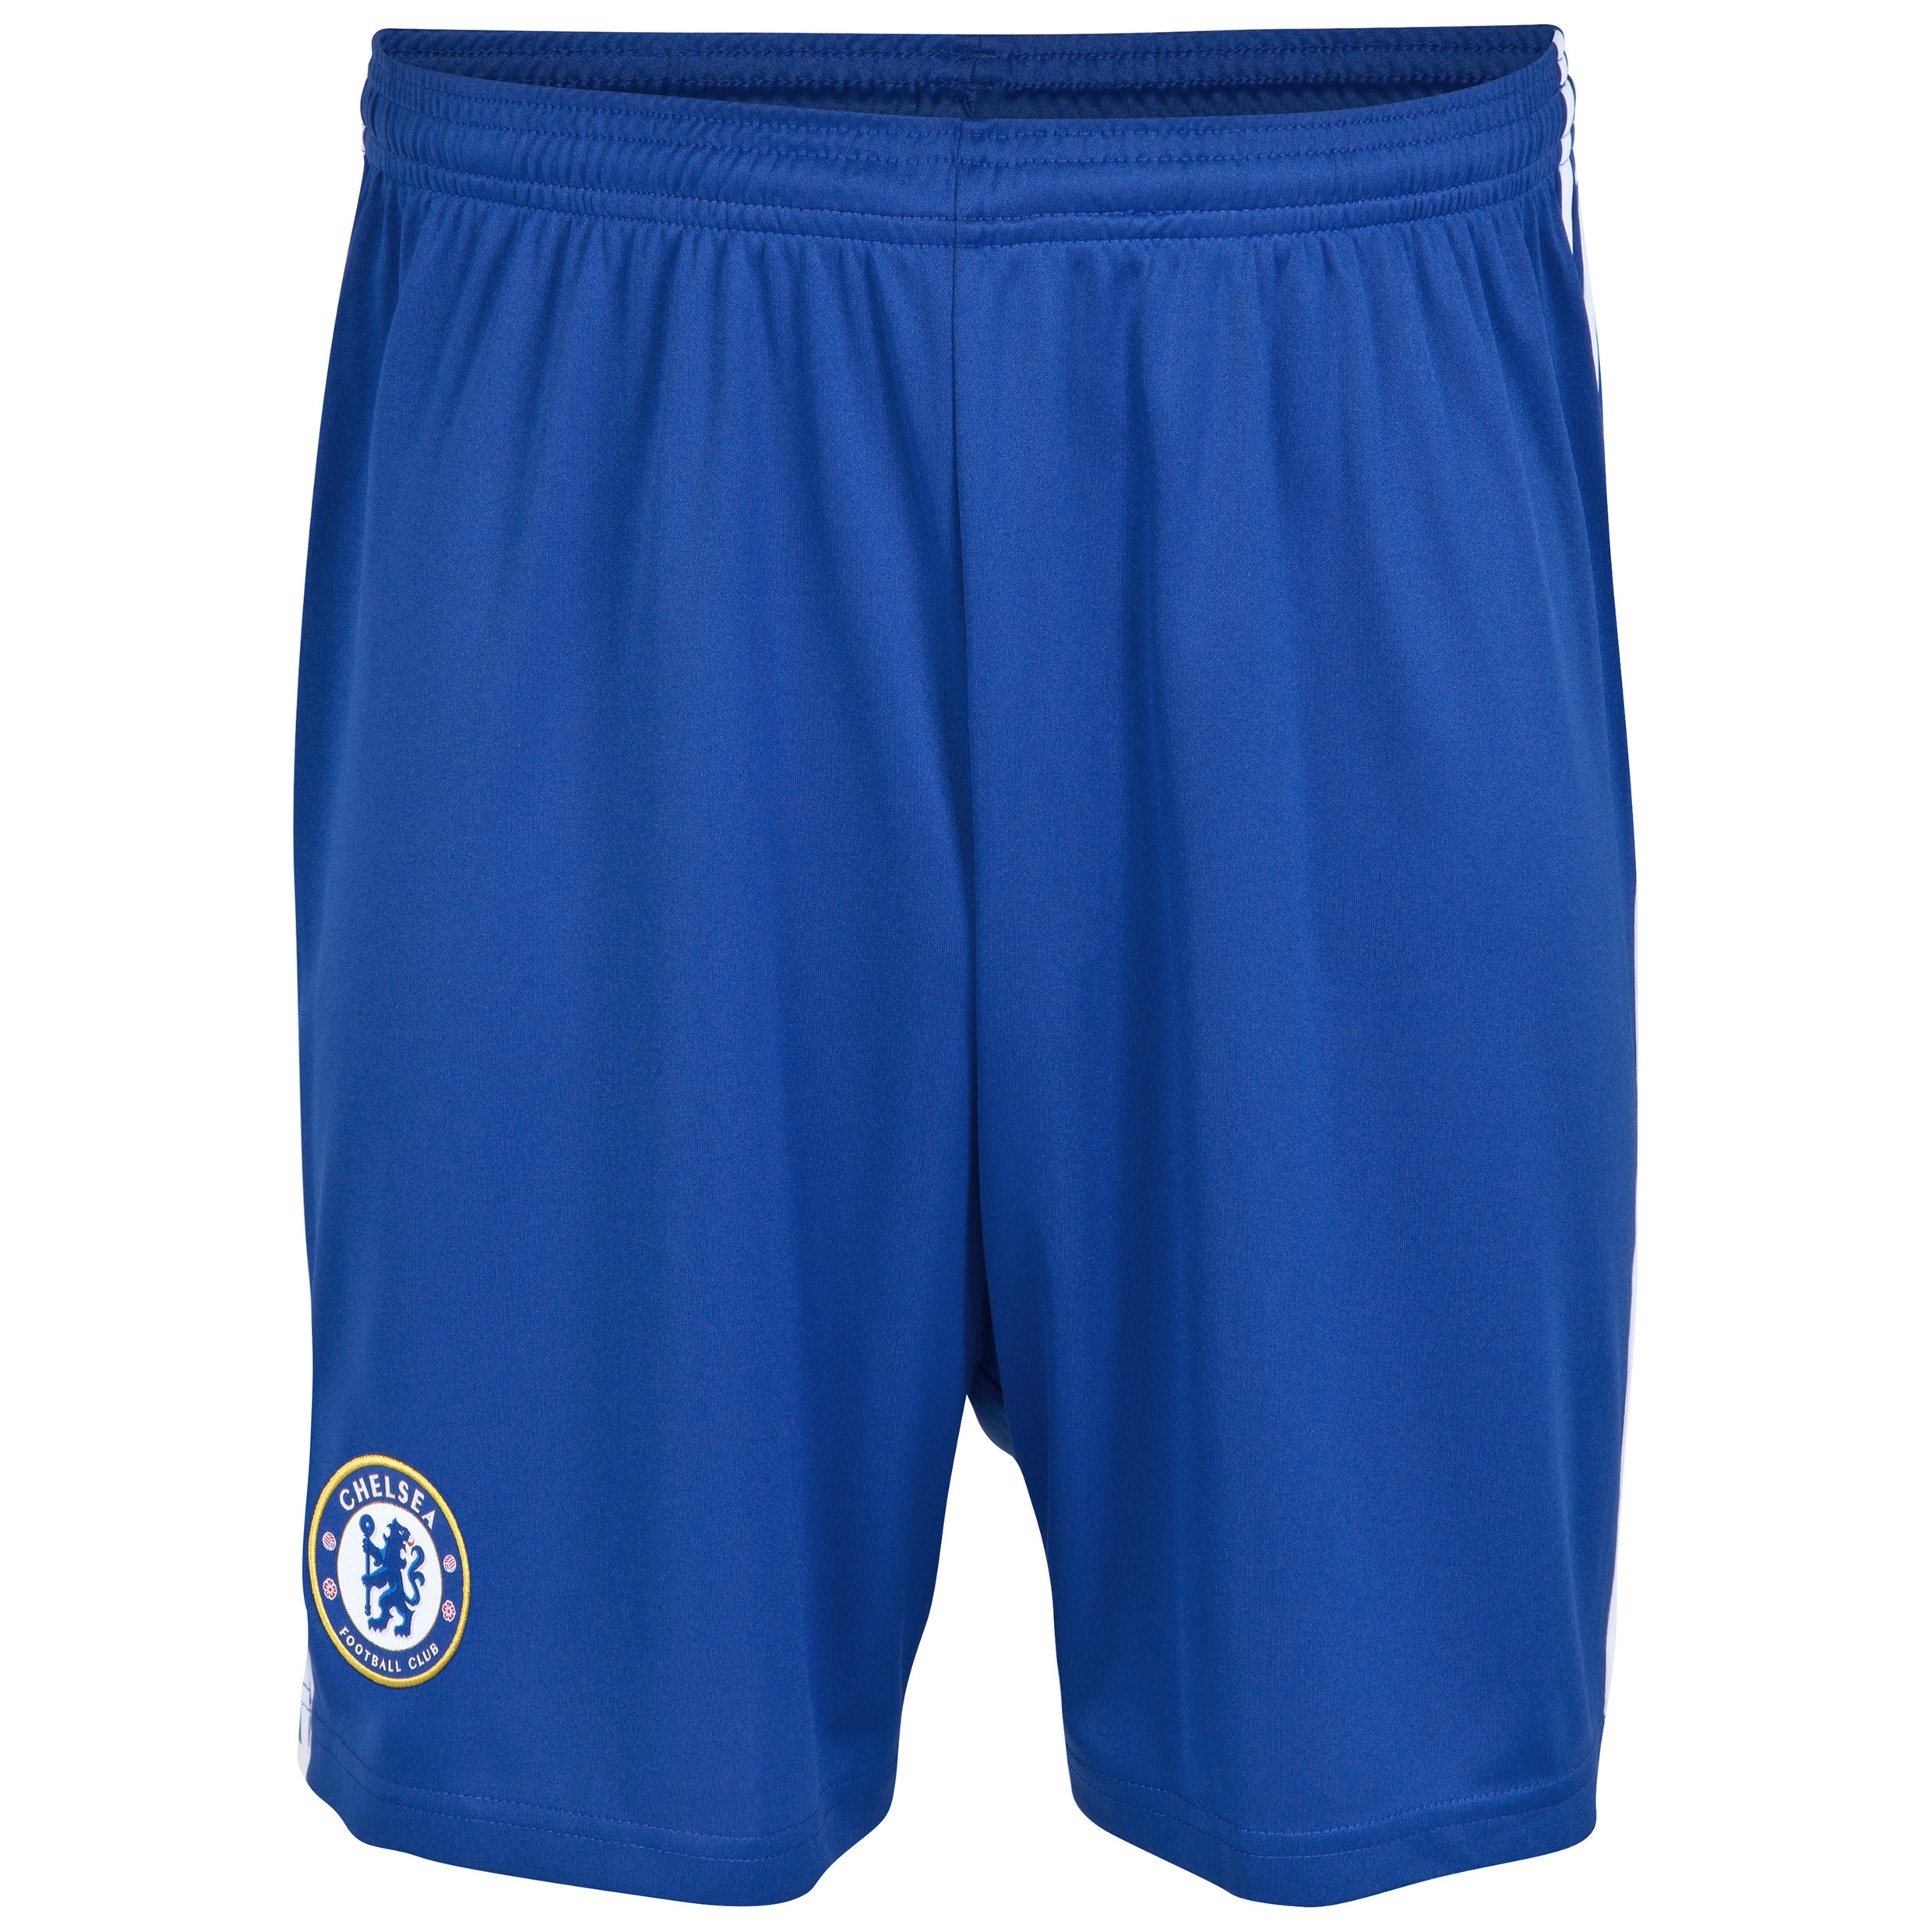 Chelsea Home Short 2014/15 Blue